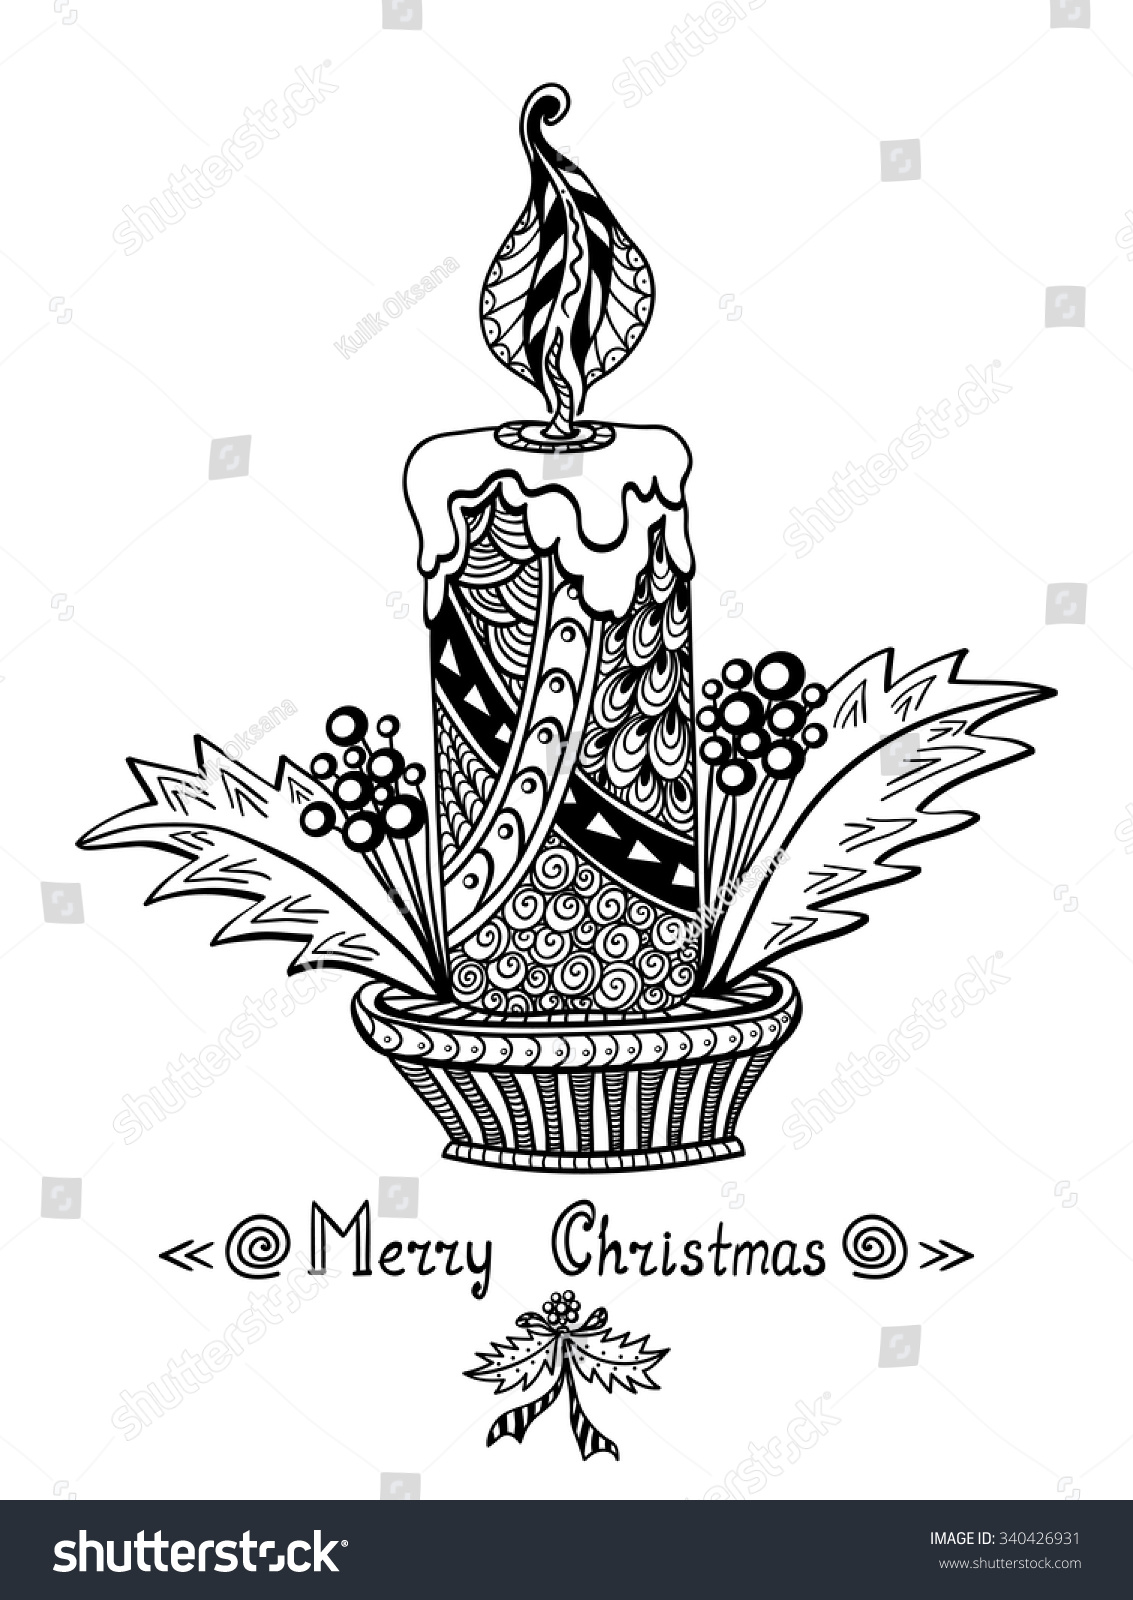 Christmas Candle In Zen Doodle Style Black On White Coloring Page For Book Or